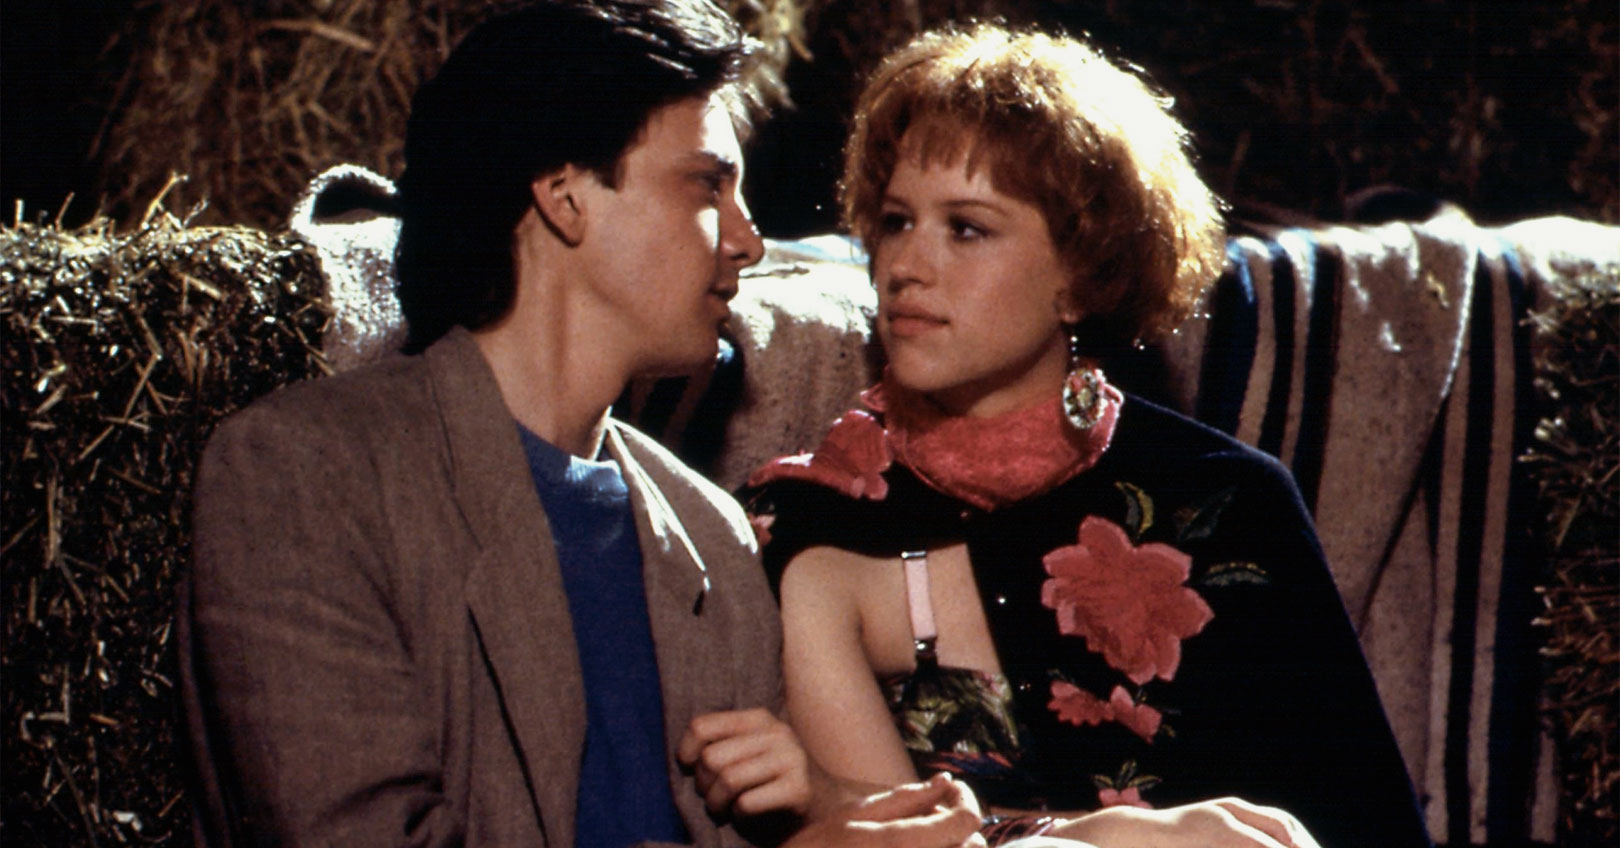 Pretty in Pink - Andrew McCarthy and Molly Ringwald